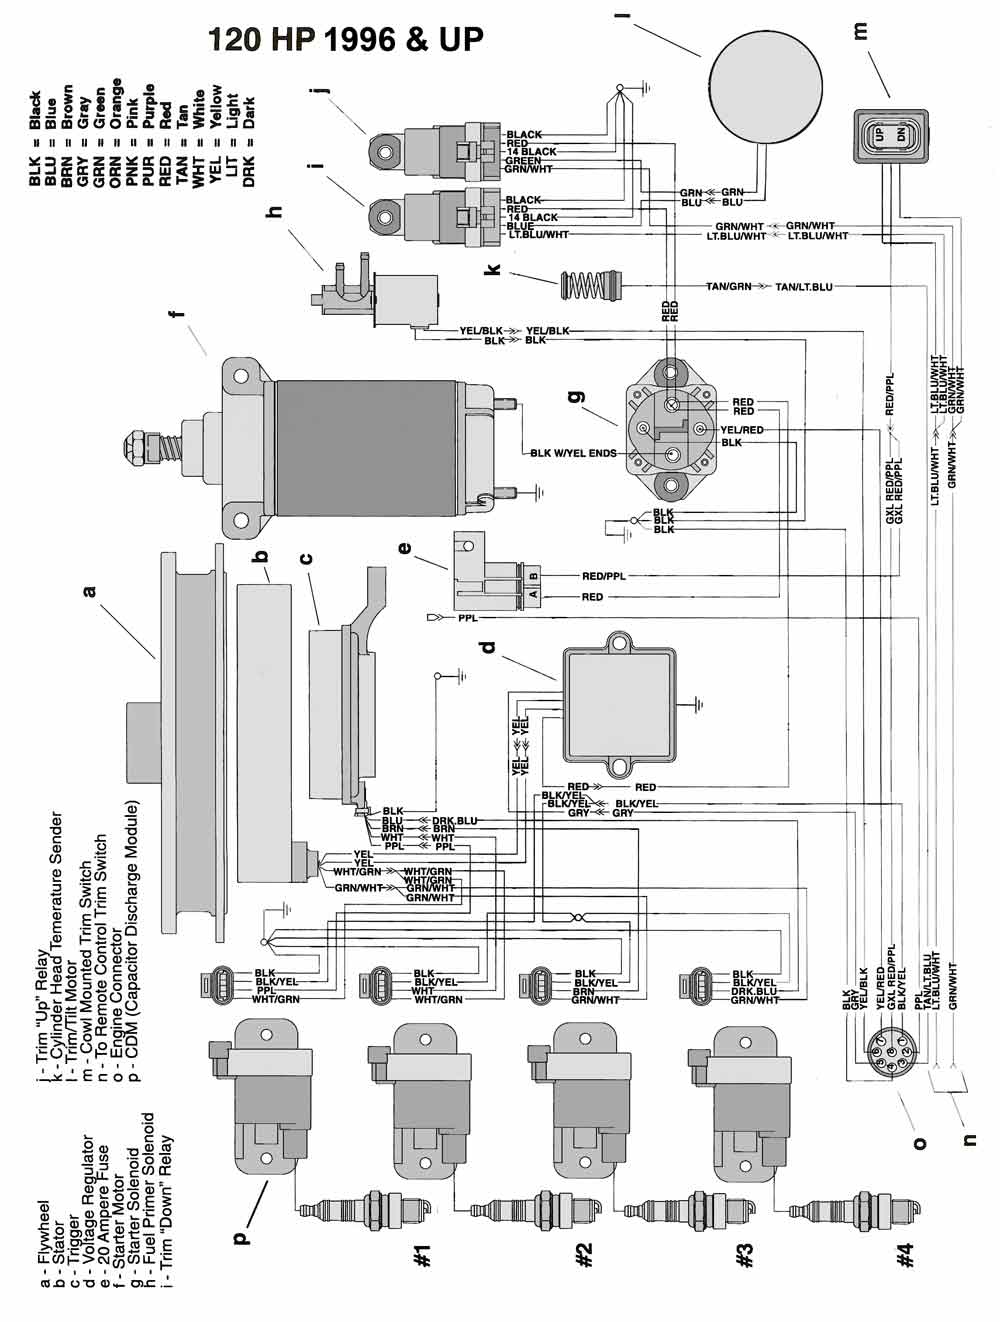 Force Outboard Ignition Switch Wiring Diagram Just Another On Pollak Get Mastertech Marine Chrysler Diagrams Rh Maxrules Com Johnson